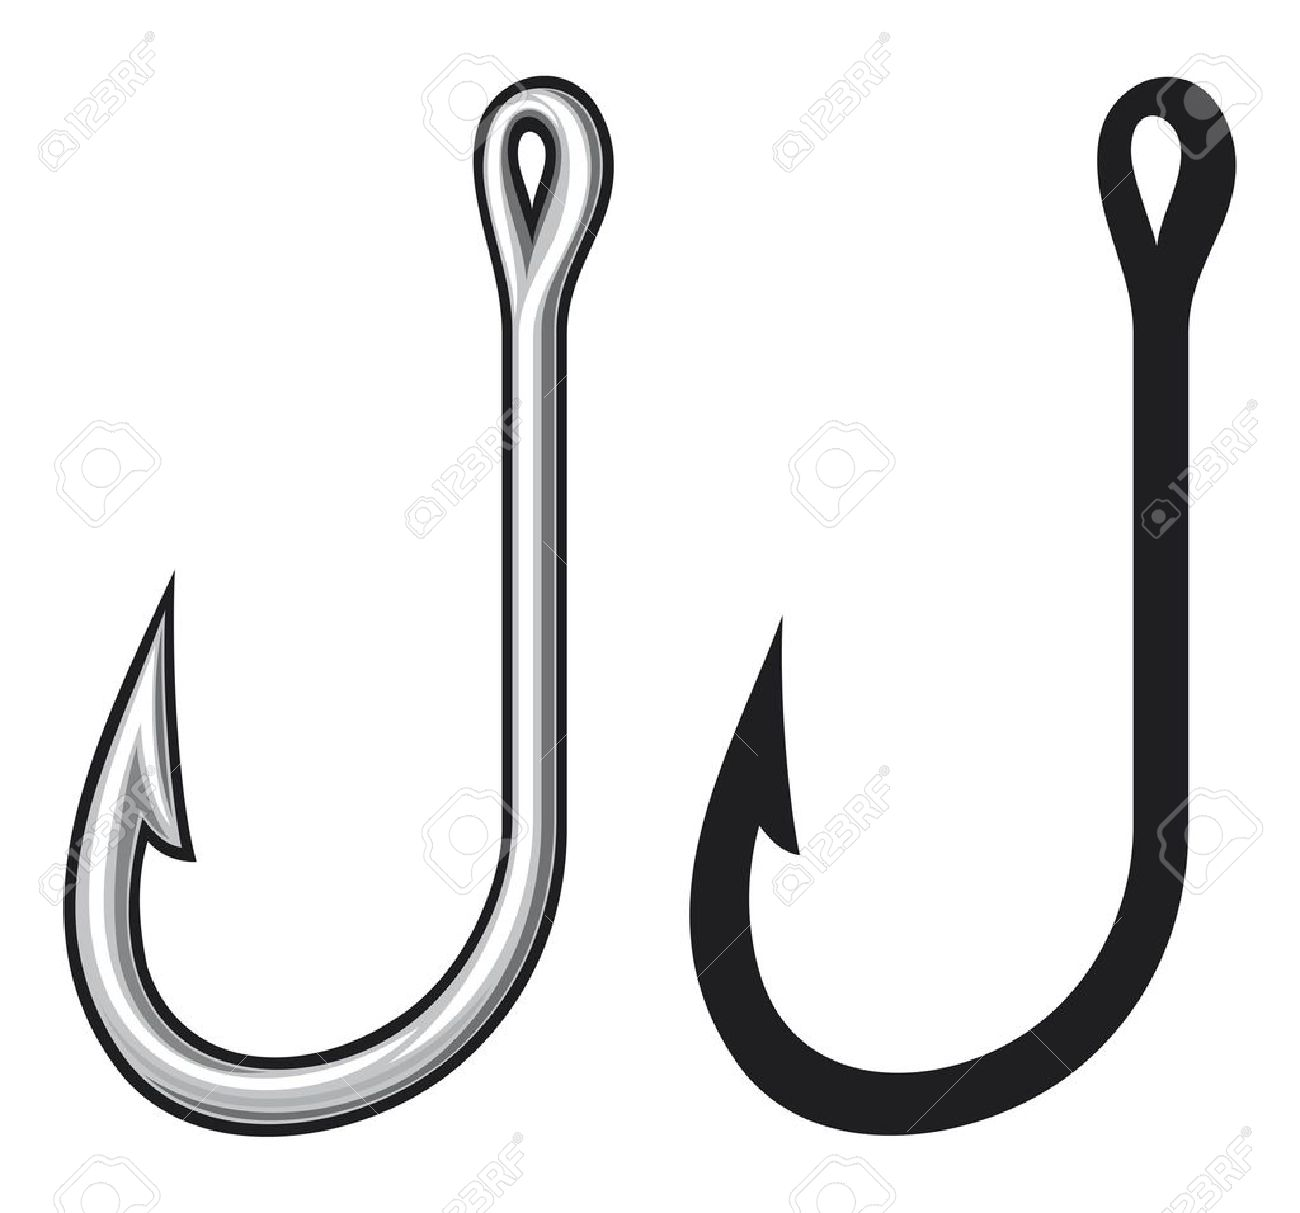 Free Hooks Cliparts, Download Free Clip Art, Free Clip Art.